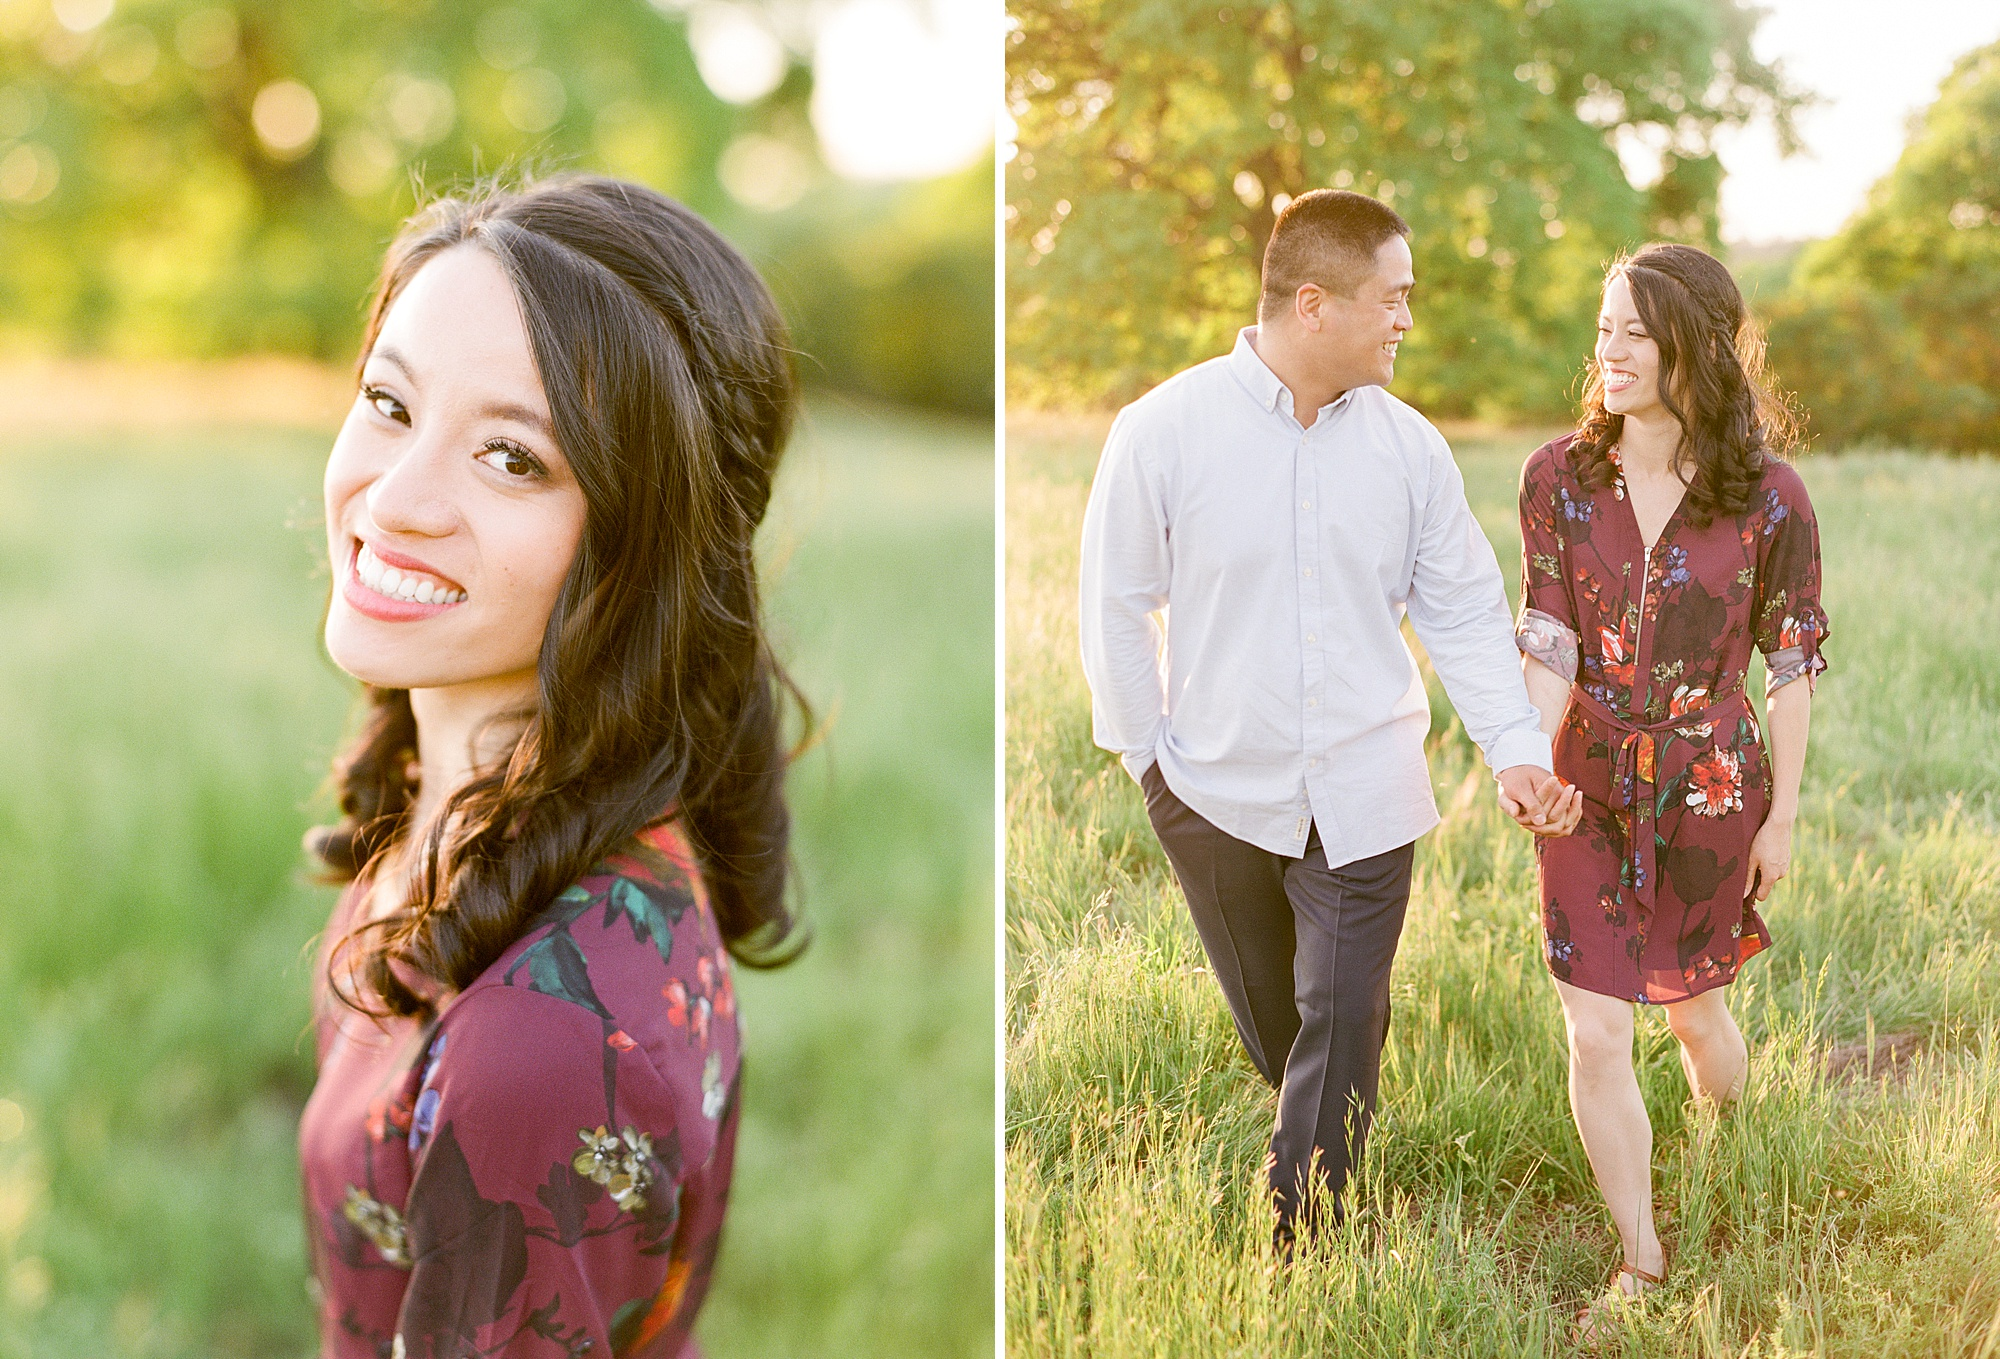 El Dorado Hills Engagement Session - Wendy and Danny - Ashley Baumgartner - Sacramento Wedding Photographer and Sacramento Wedding Photography - Bay Area Wedding Photographer_0024.jpg